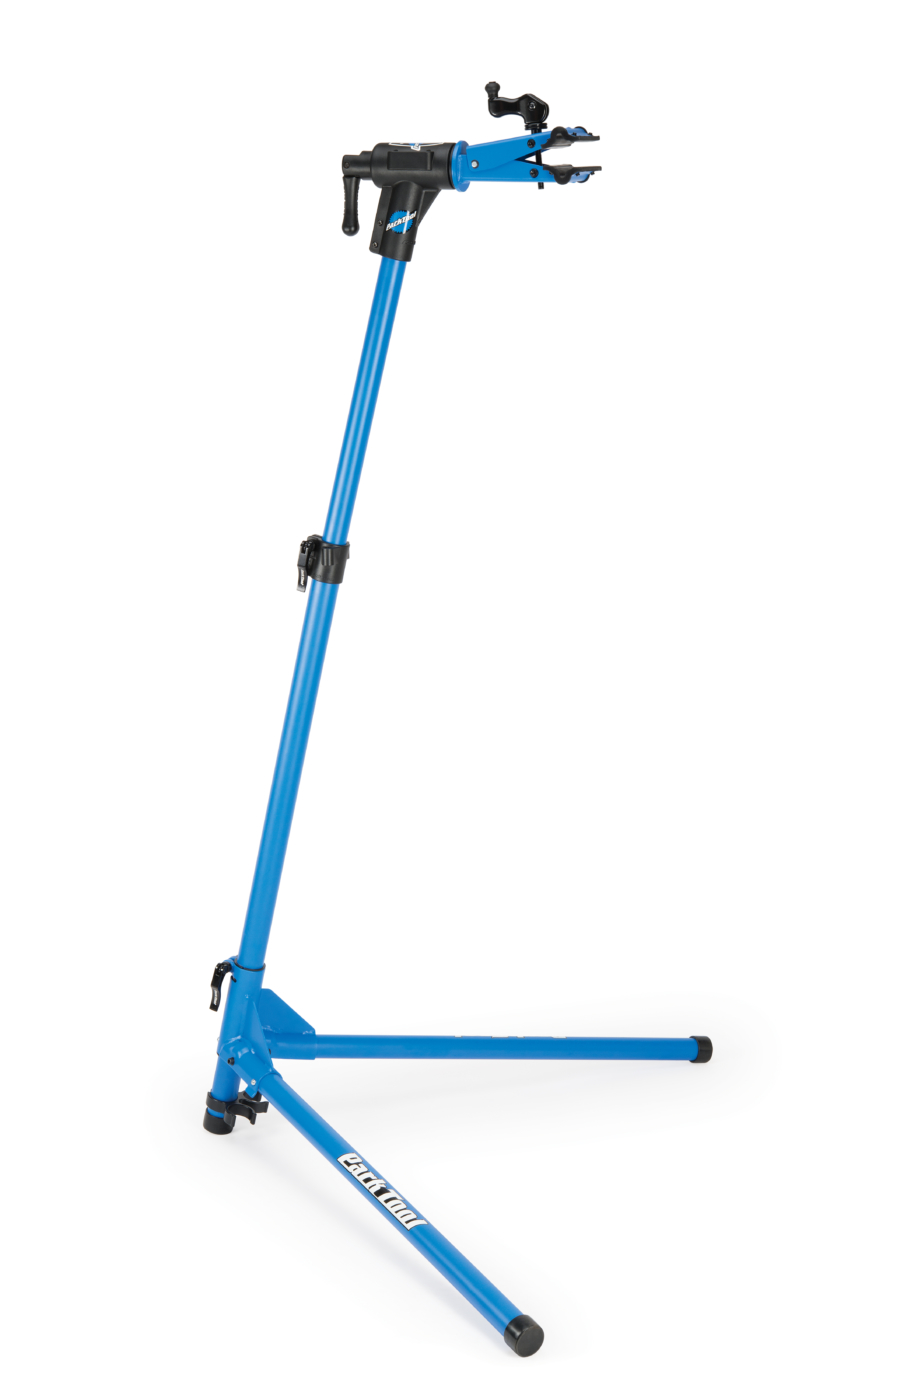 Park Tool PCS 4-2 Deluxe Home Bicycle Repair Stand-Single Bike-Blue-New